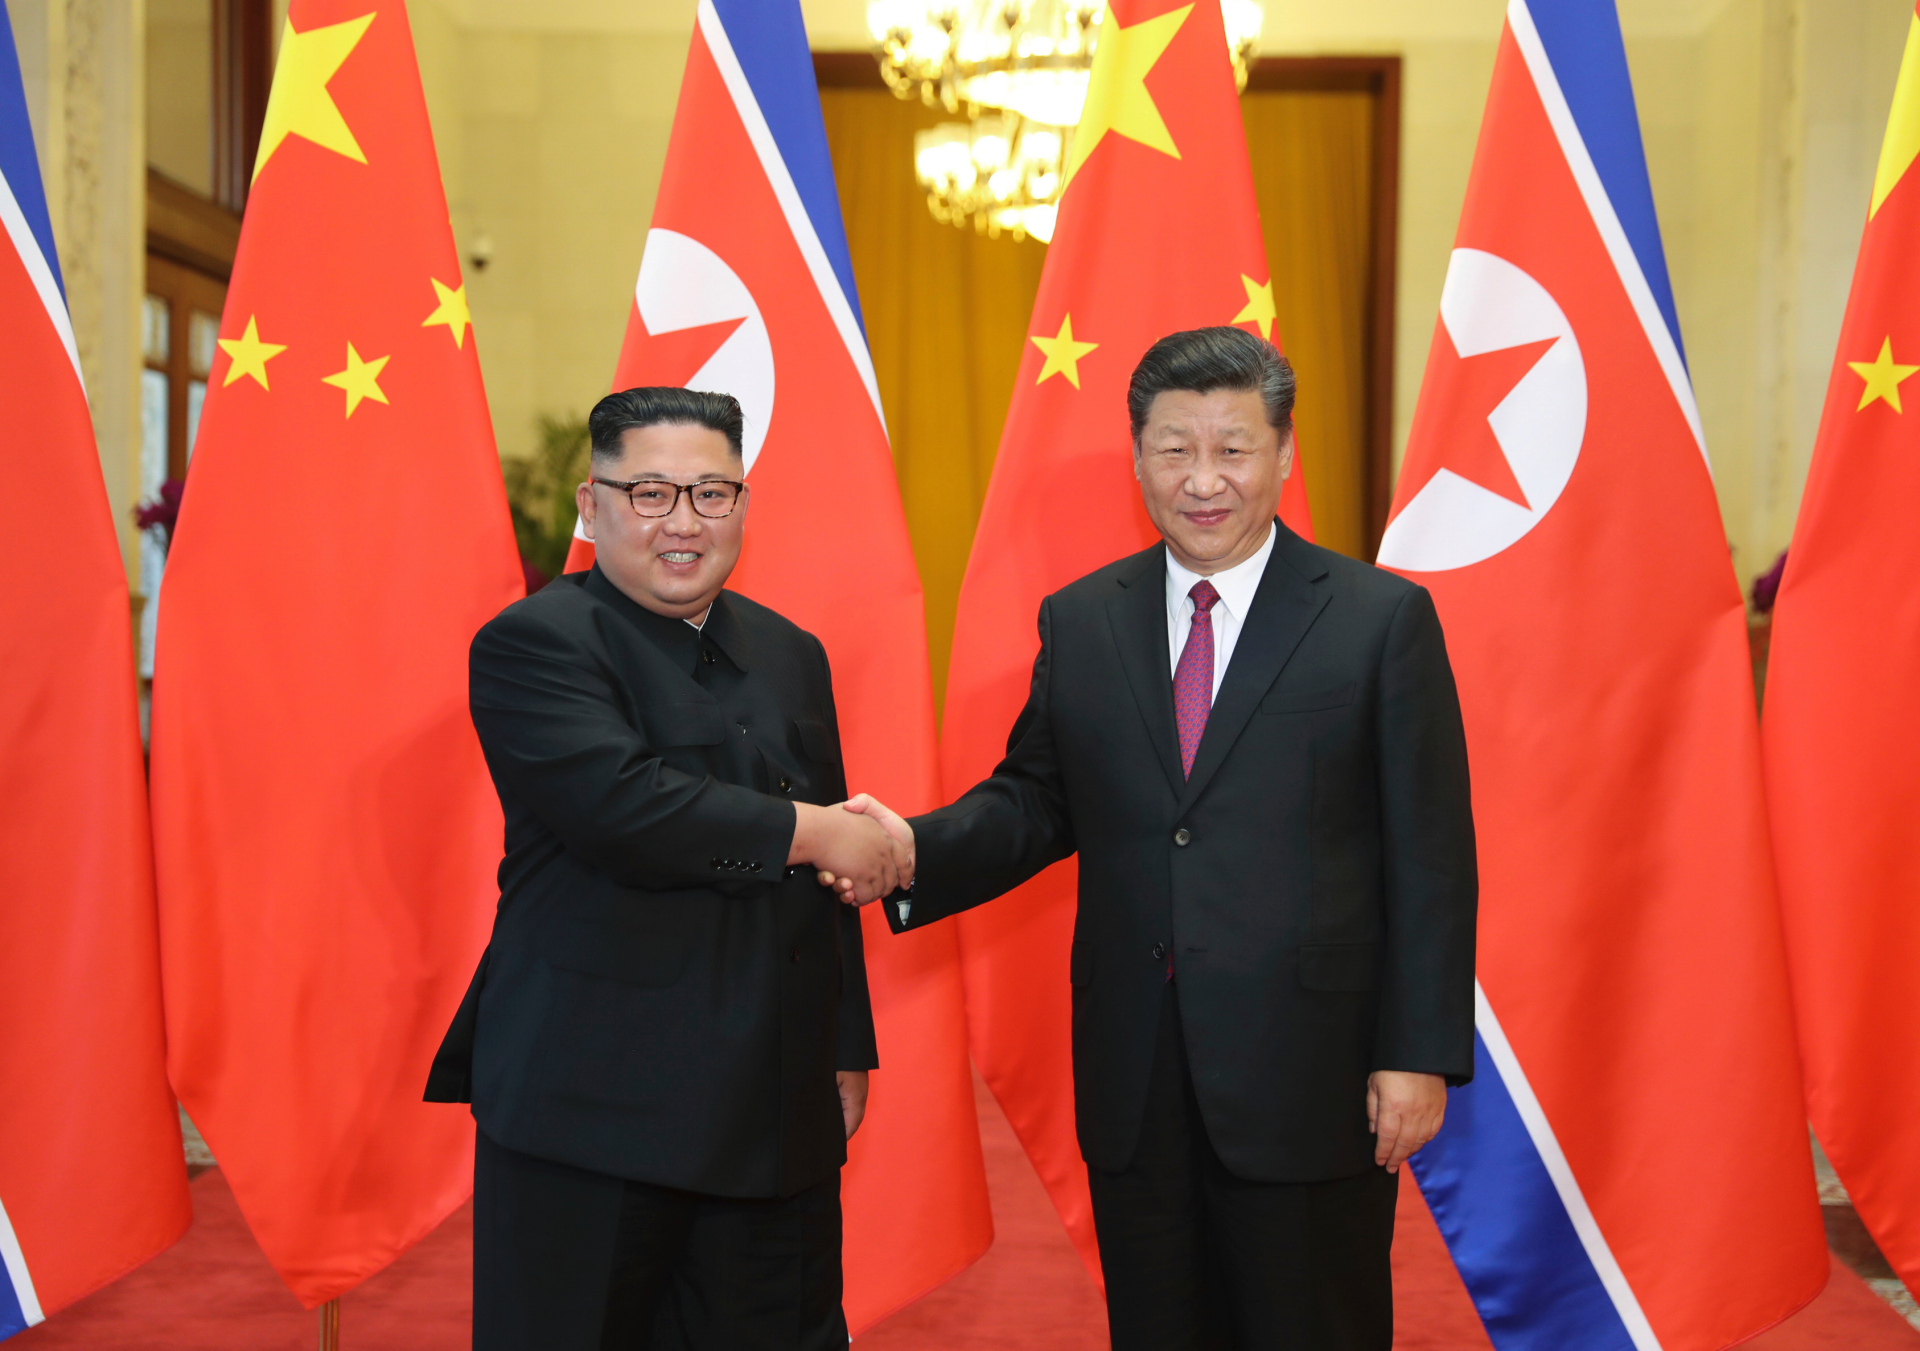 Westlake Legal Group ContentBroker_contentid-da88d6416fb24a9d9e4b835d1c15e1cb Xi supports North Korea's direction on issues ahead of visit SEOUL, South Korea fox-news/world/world-regions/asia fox-news/world fnc/world fnc Associated Press article 71408b2e-06d1-5b2b-9a21-dfd1bc8aec0e